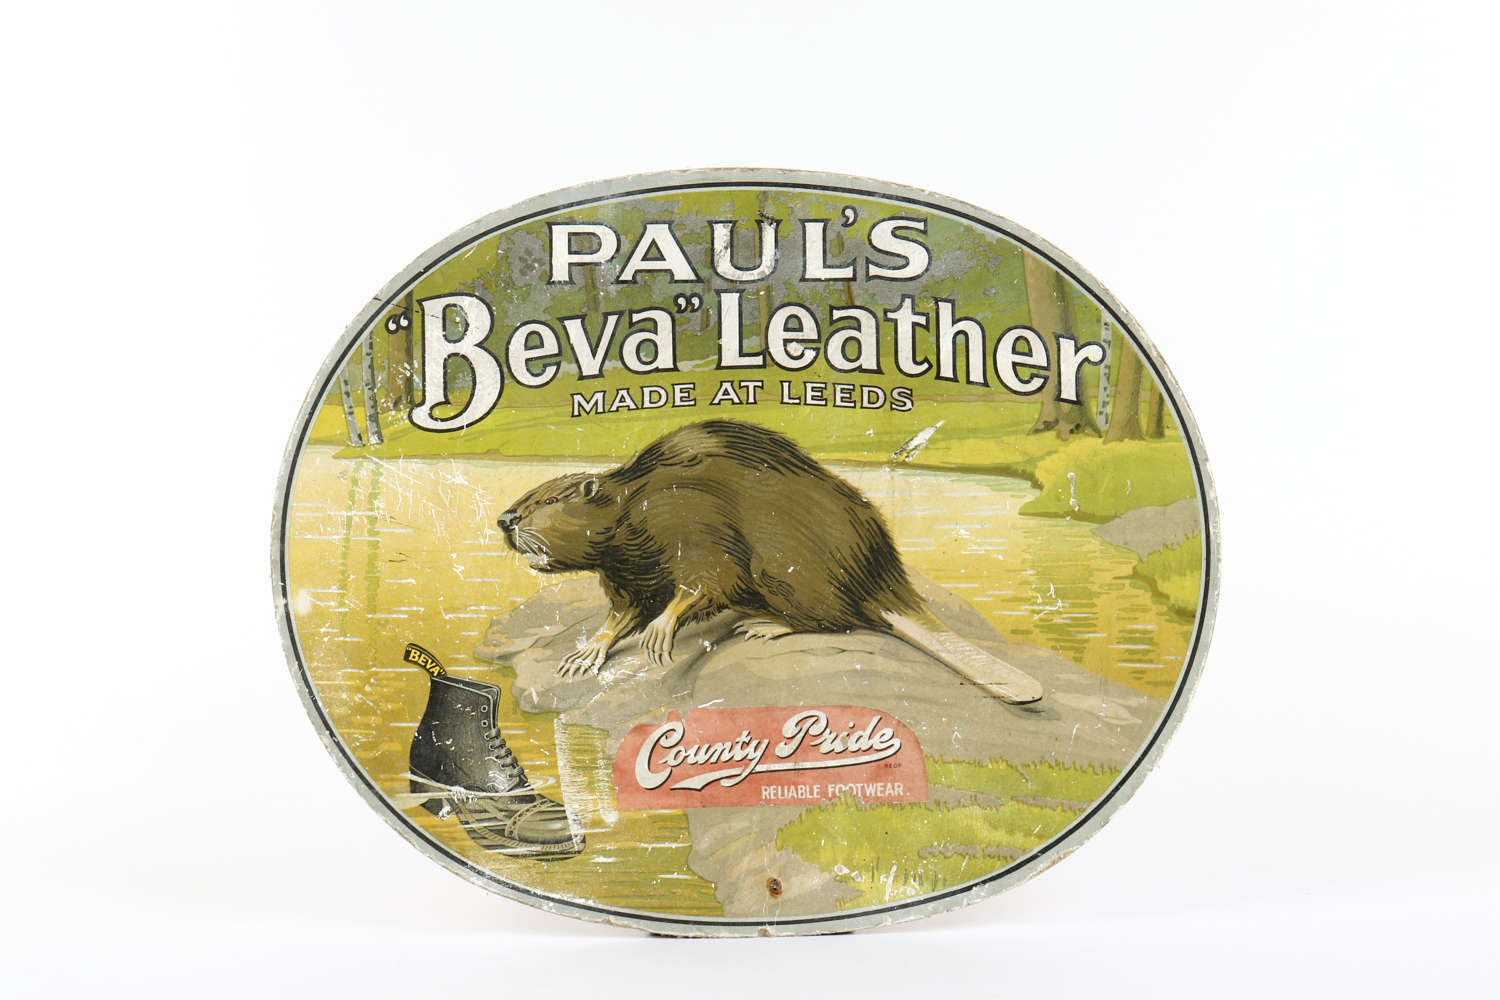 Original vintage advertising showcard for 'Paul's Beva Leather'